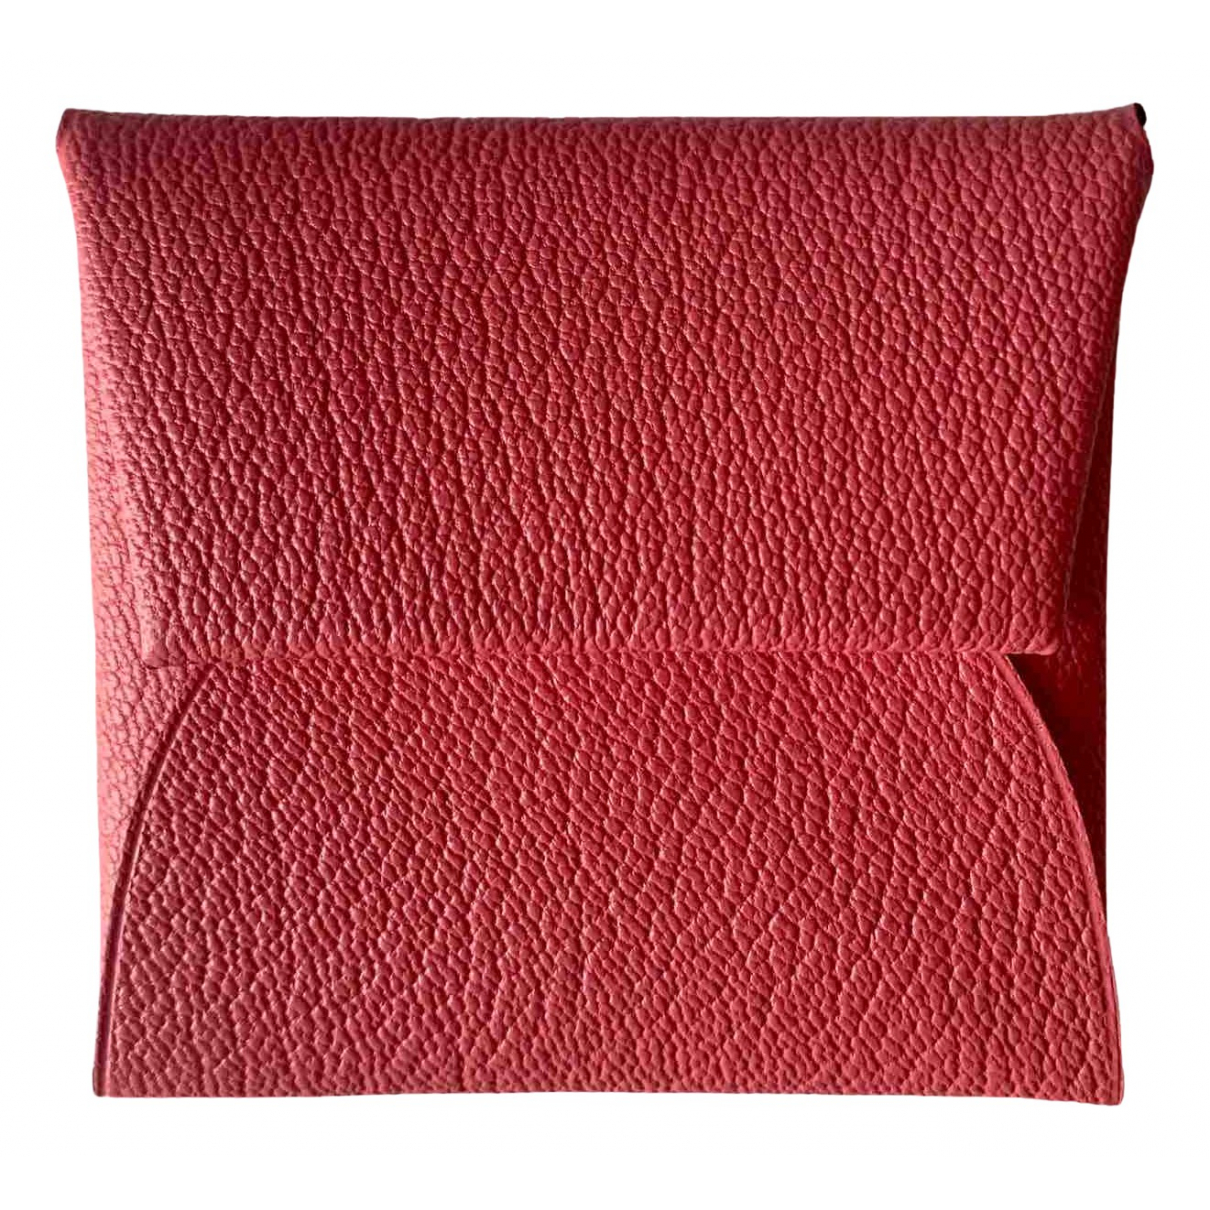 Hermès Bastia Pink Leather Purses, wallet & cases for Women \N